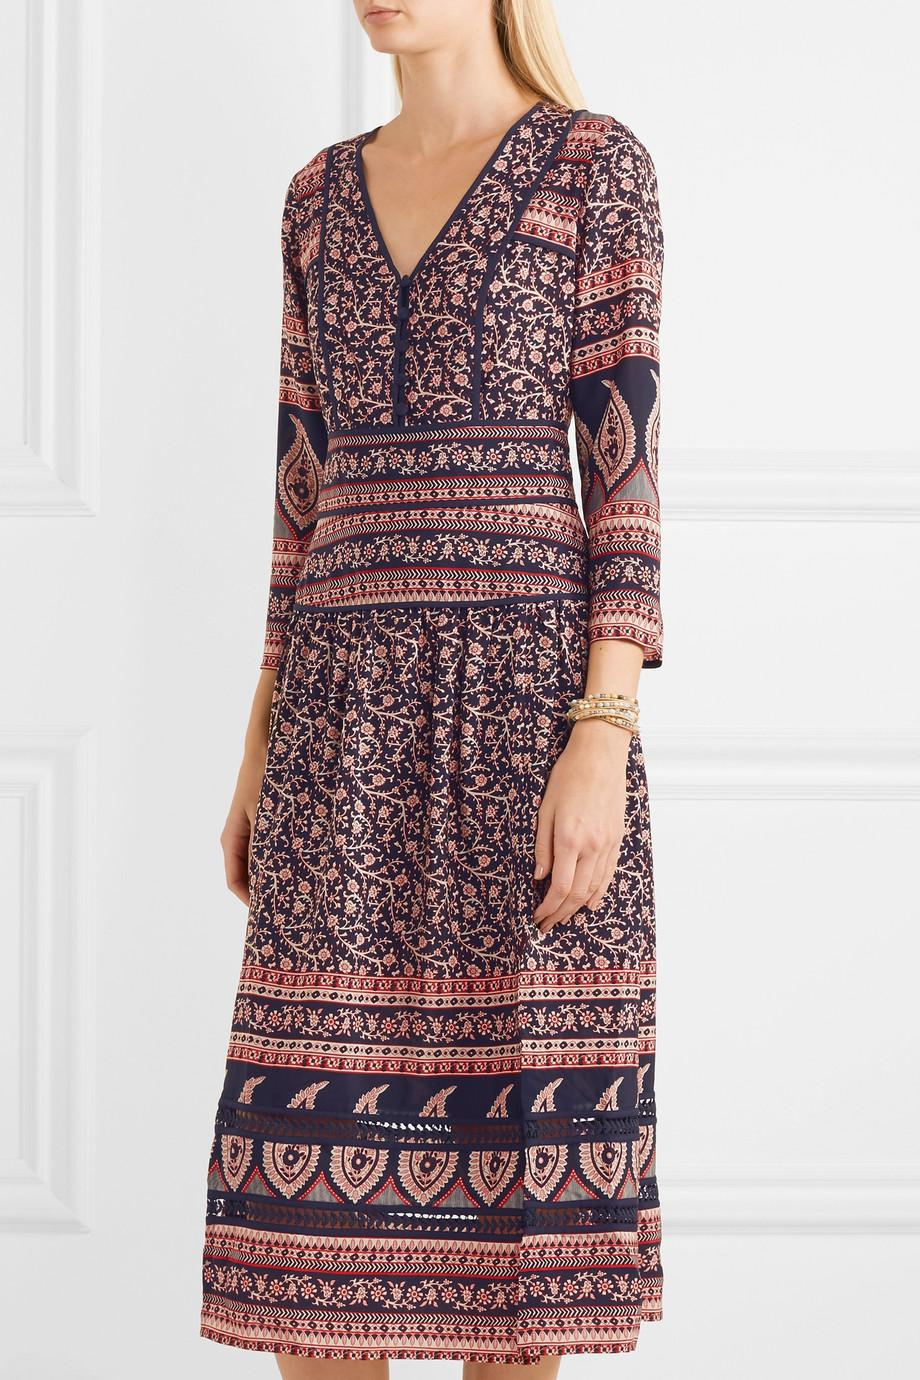 Low Cost Free Shipping Cheapest Price Aurora Printed Cotton Midi Dress - Navy Sea New York 2018 Cheap Sale Many Kinds Of Sale Online Cheap Sale Collections x2ixY